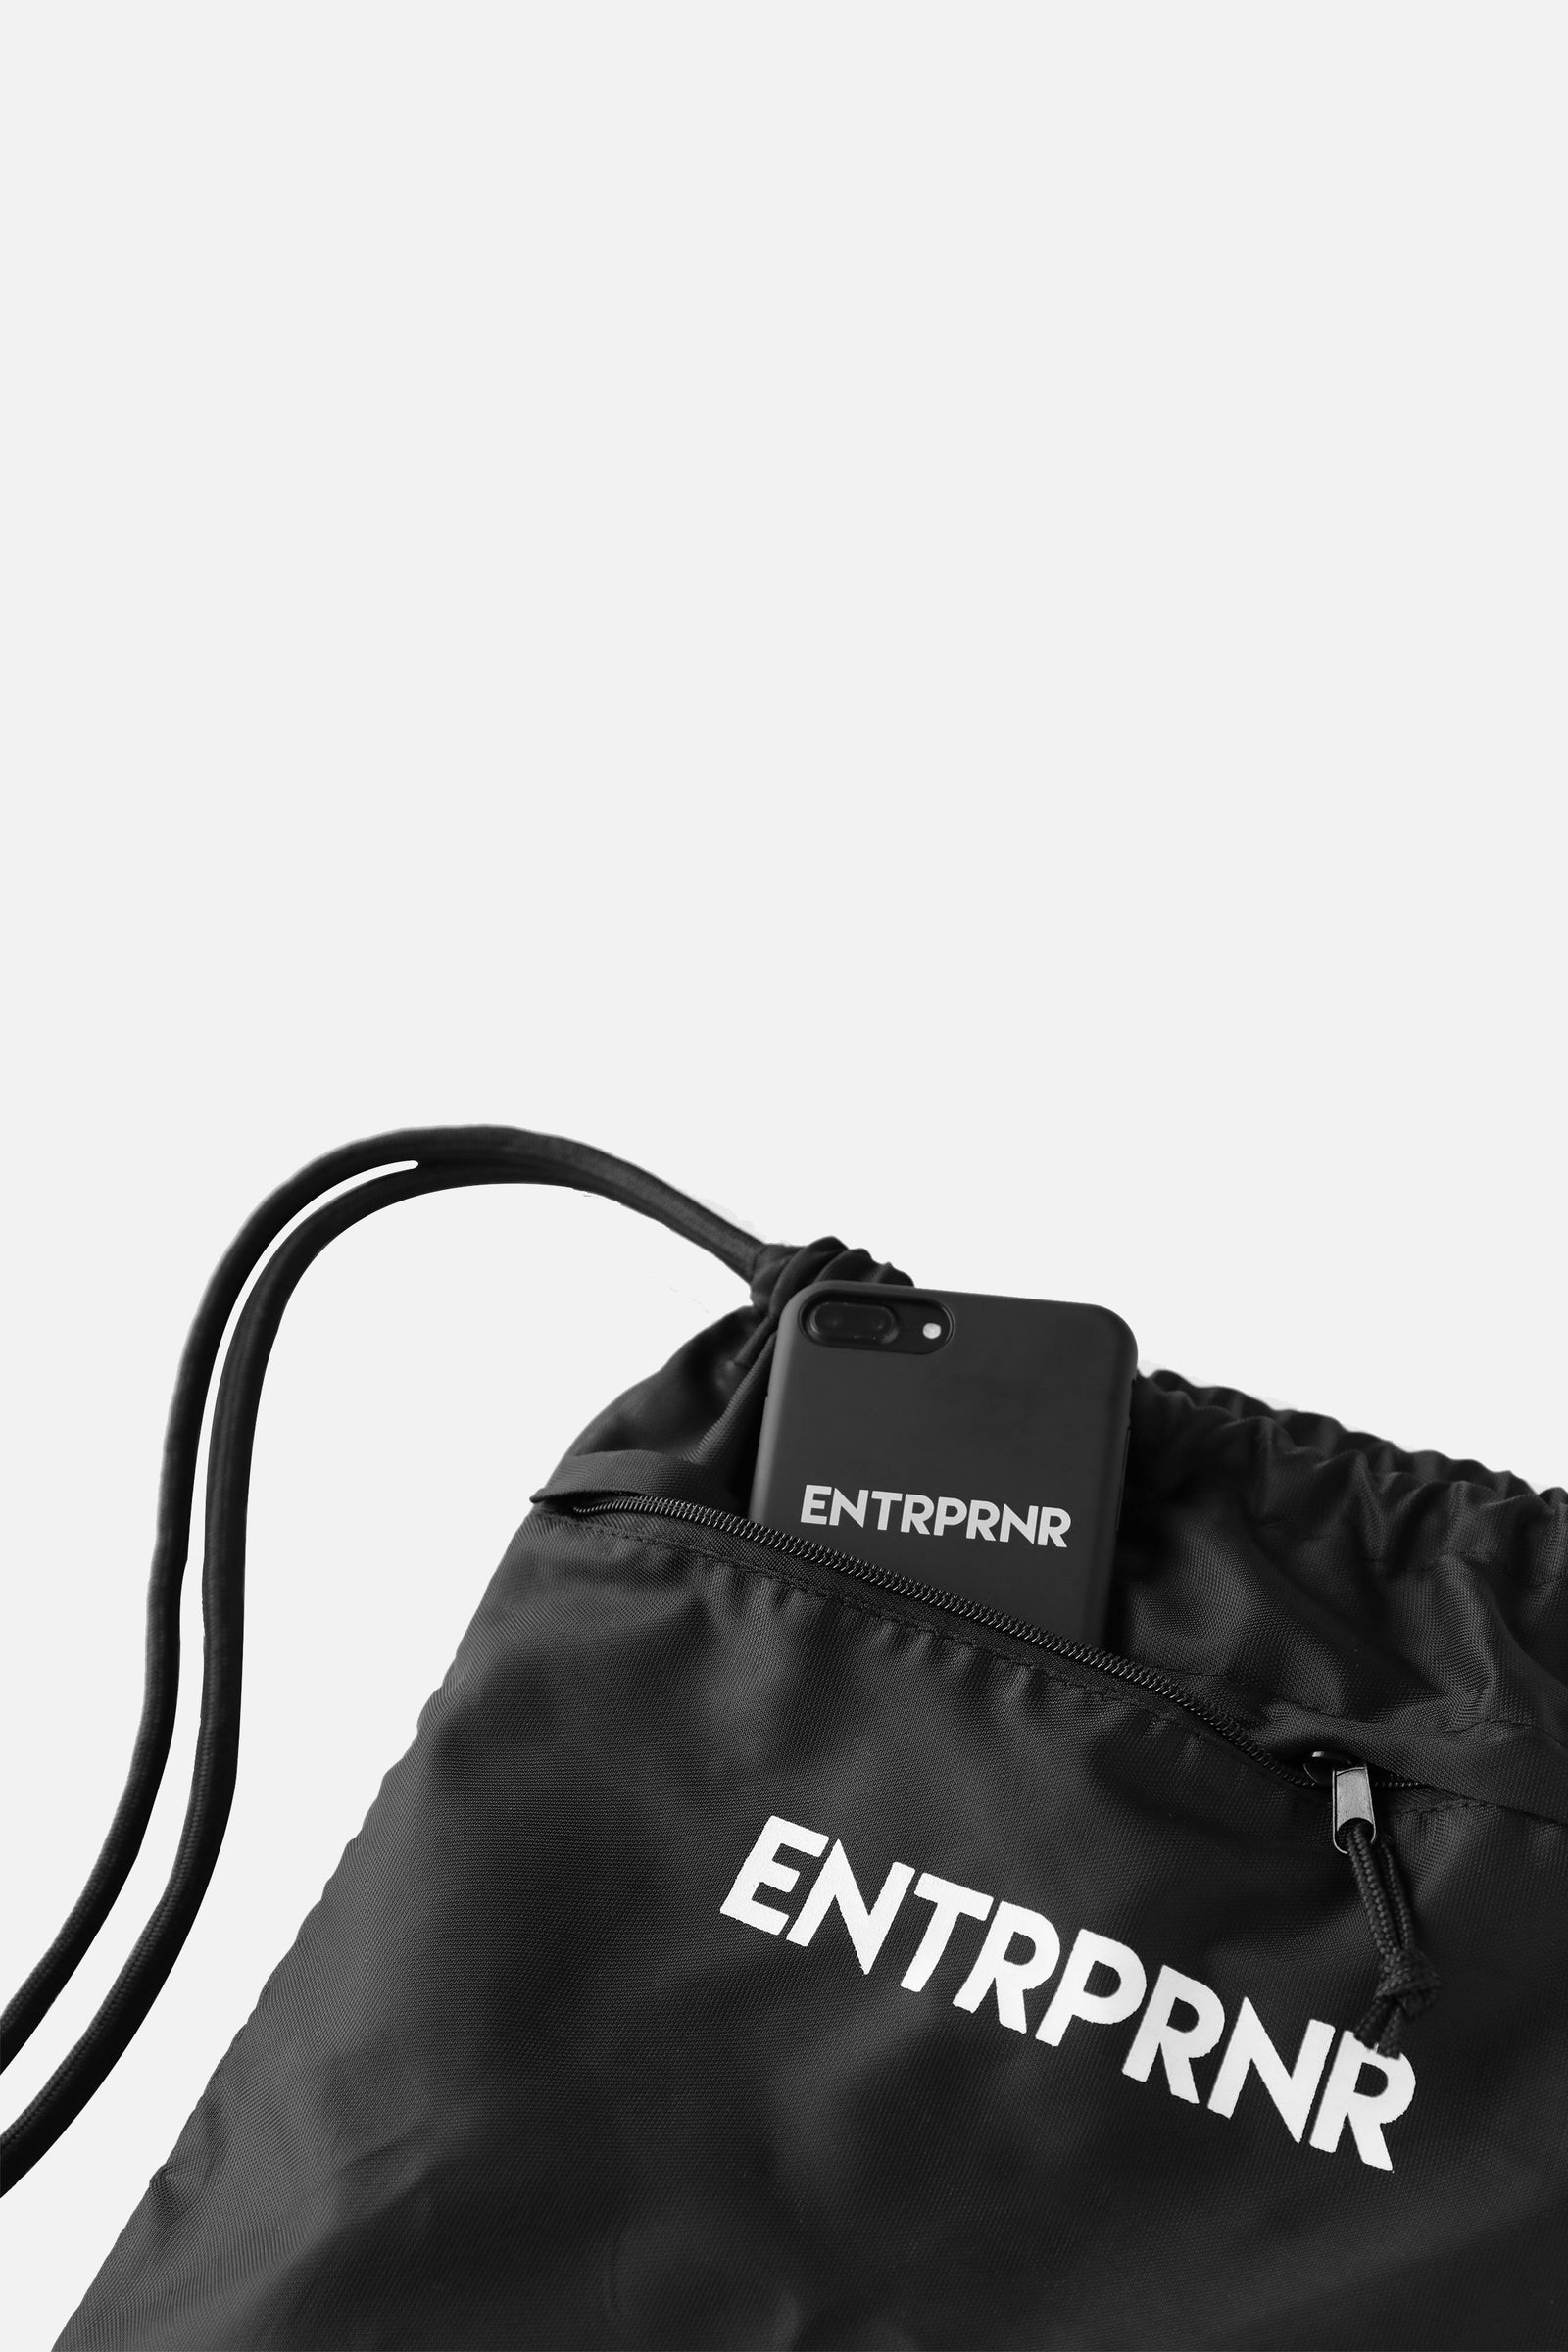 ENTRPRNR Drawstring Bag - ENTRPRNR® | The Entrepreneur's Clothing Brand. | Stagnancy is the Enemy. Action is King.